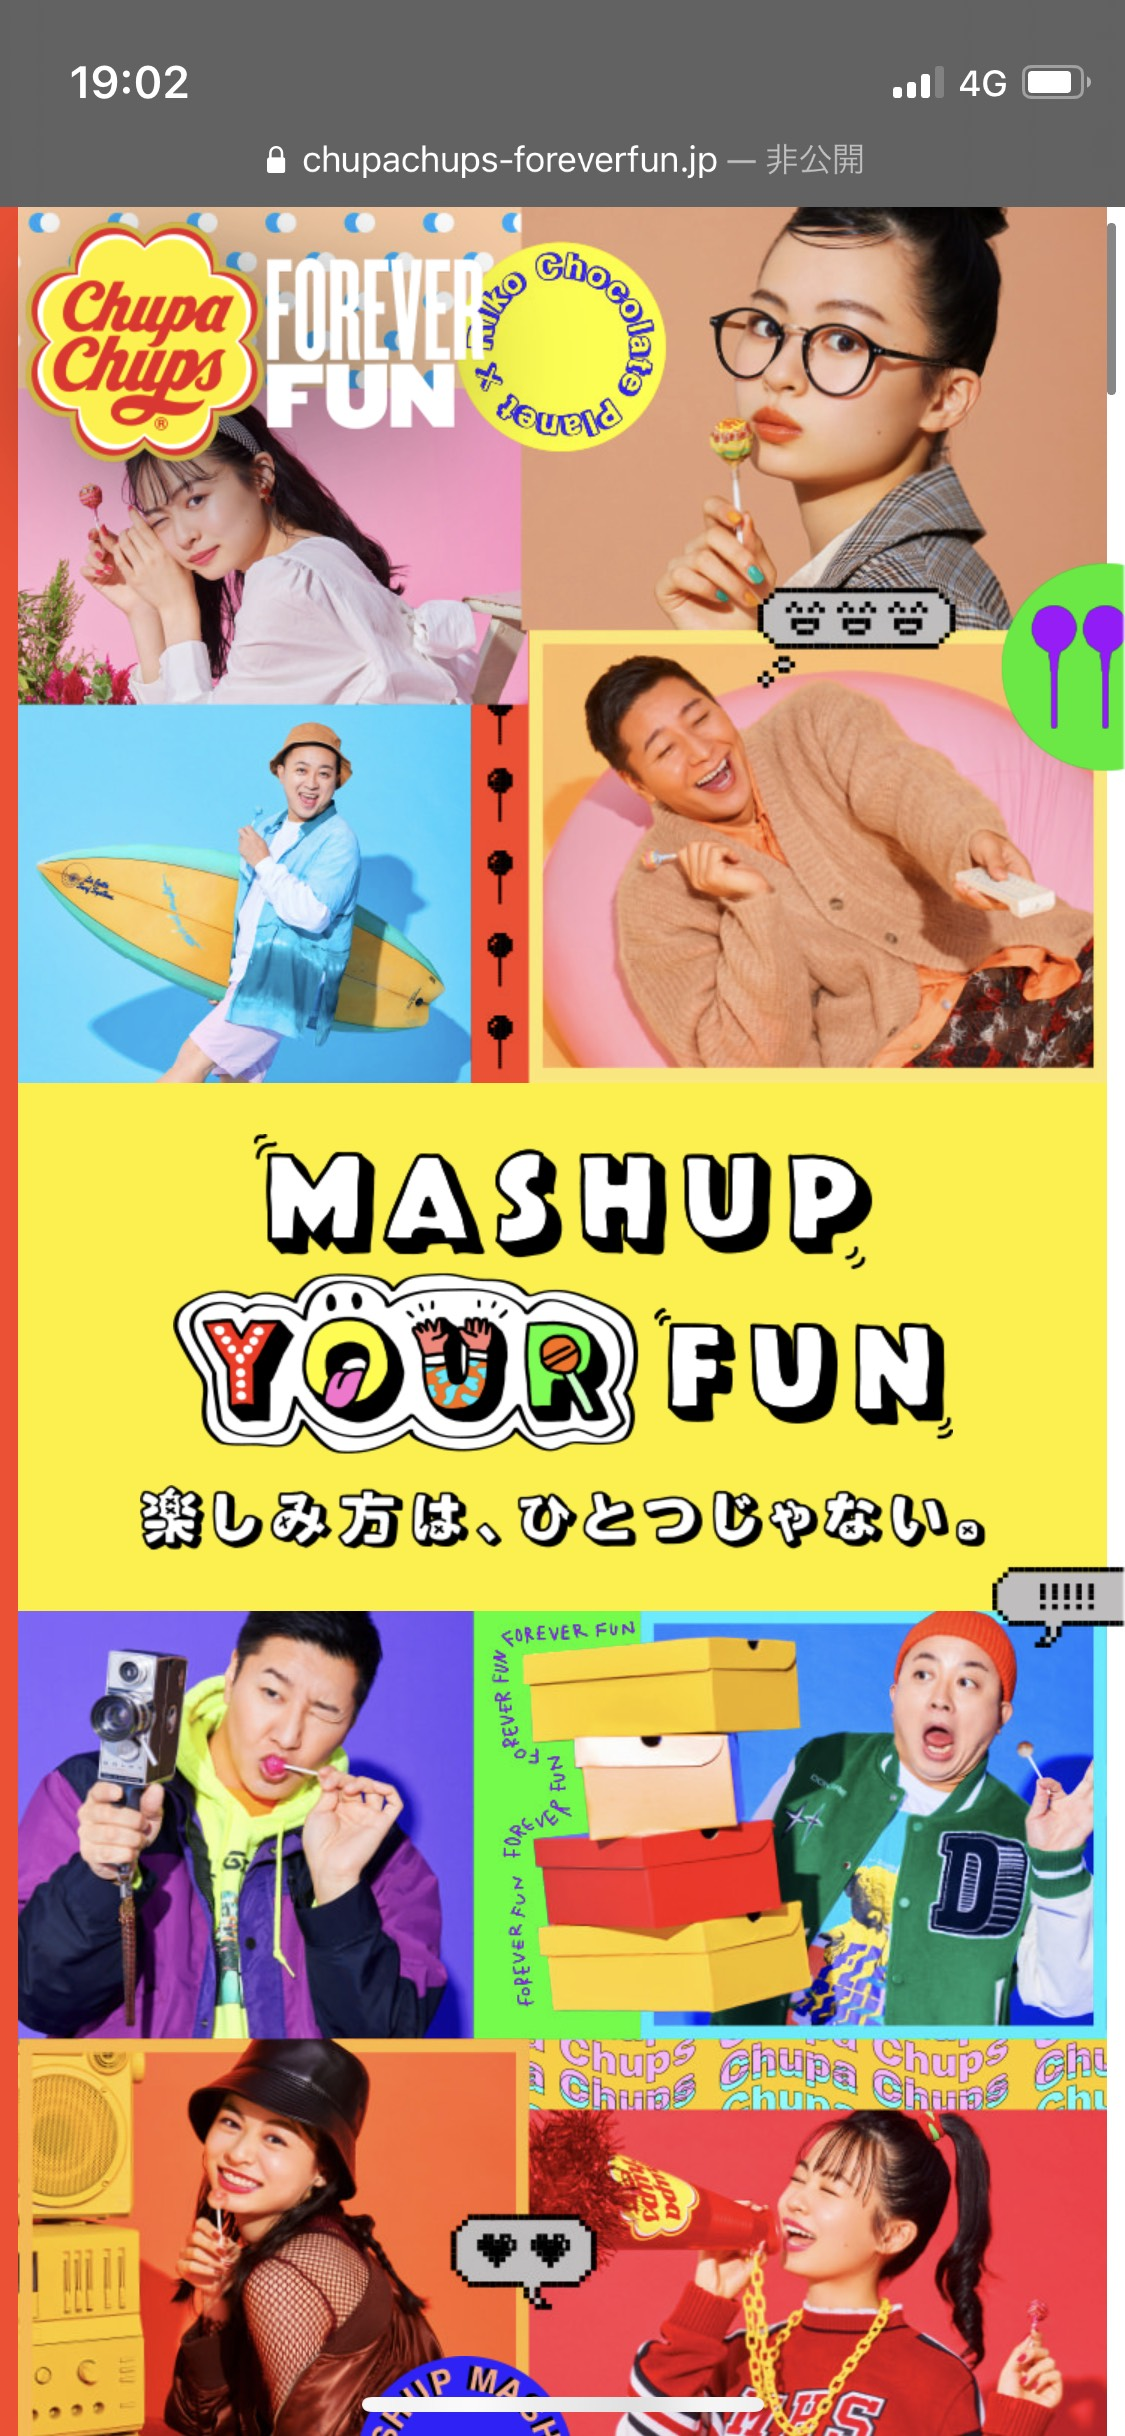 『MASHUP YOUR FUN』 | Chupa Chups – FOREVER FUNのサイト